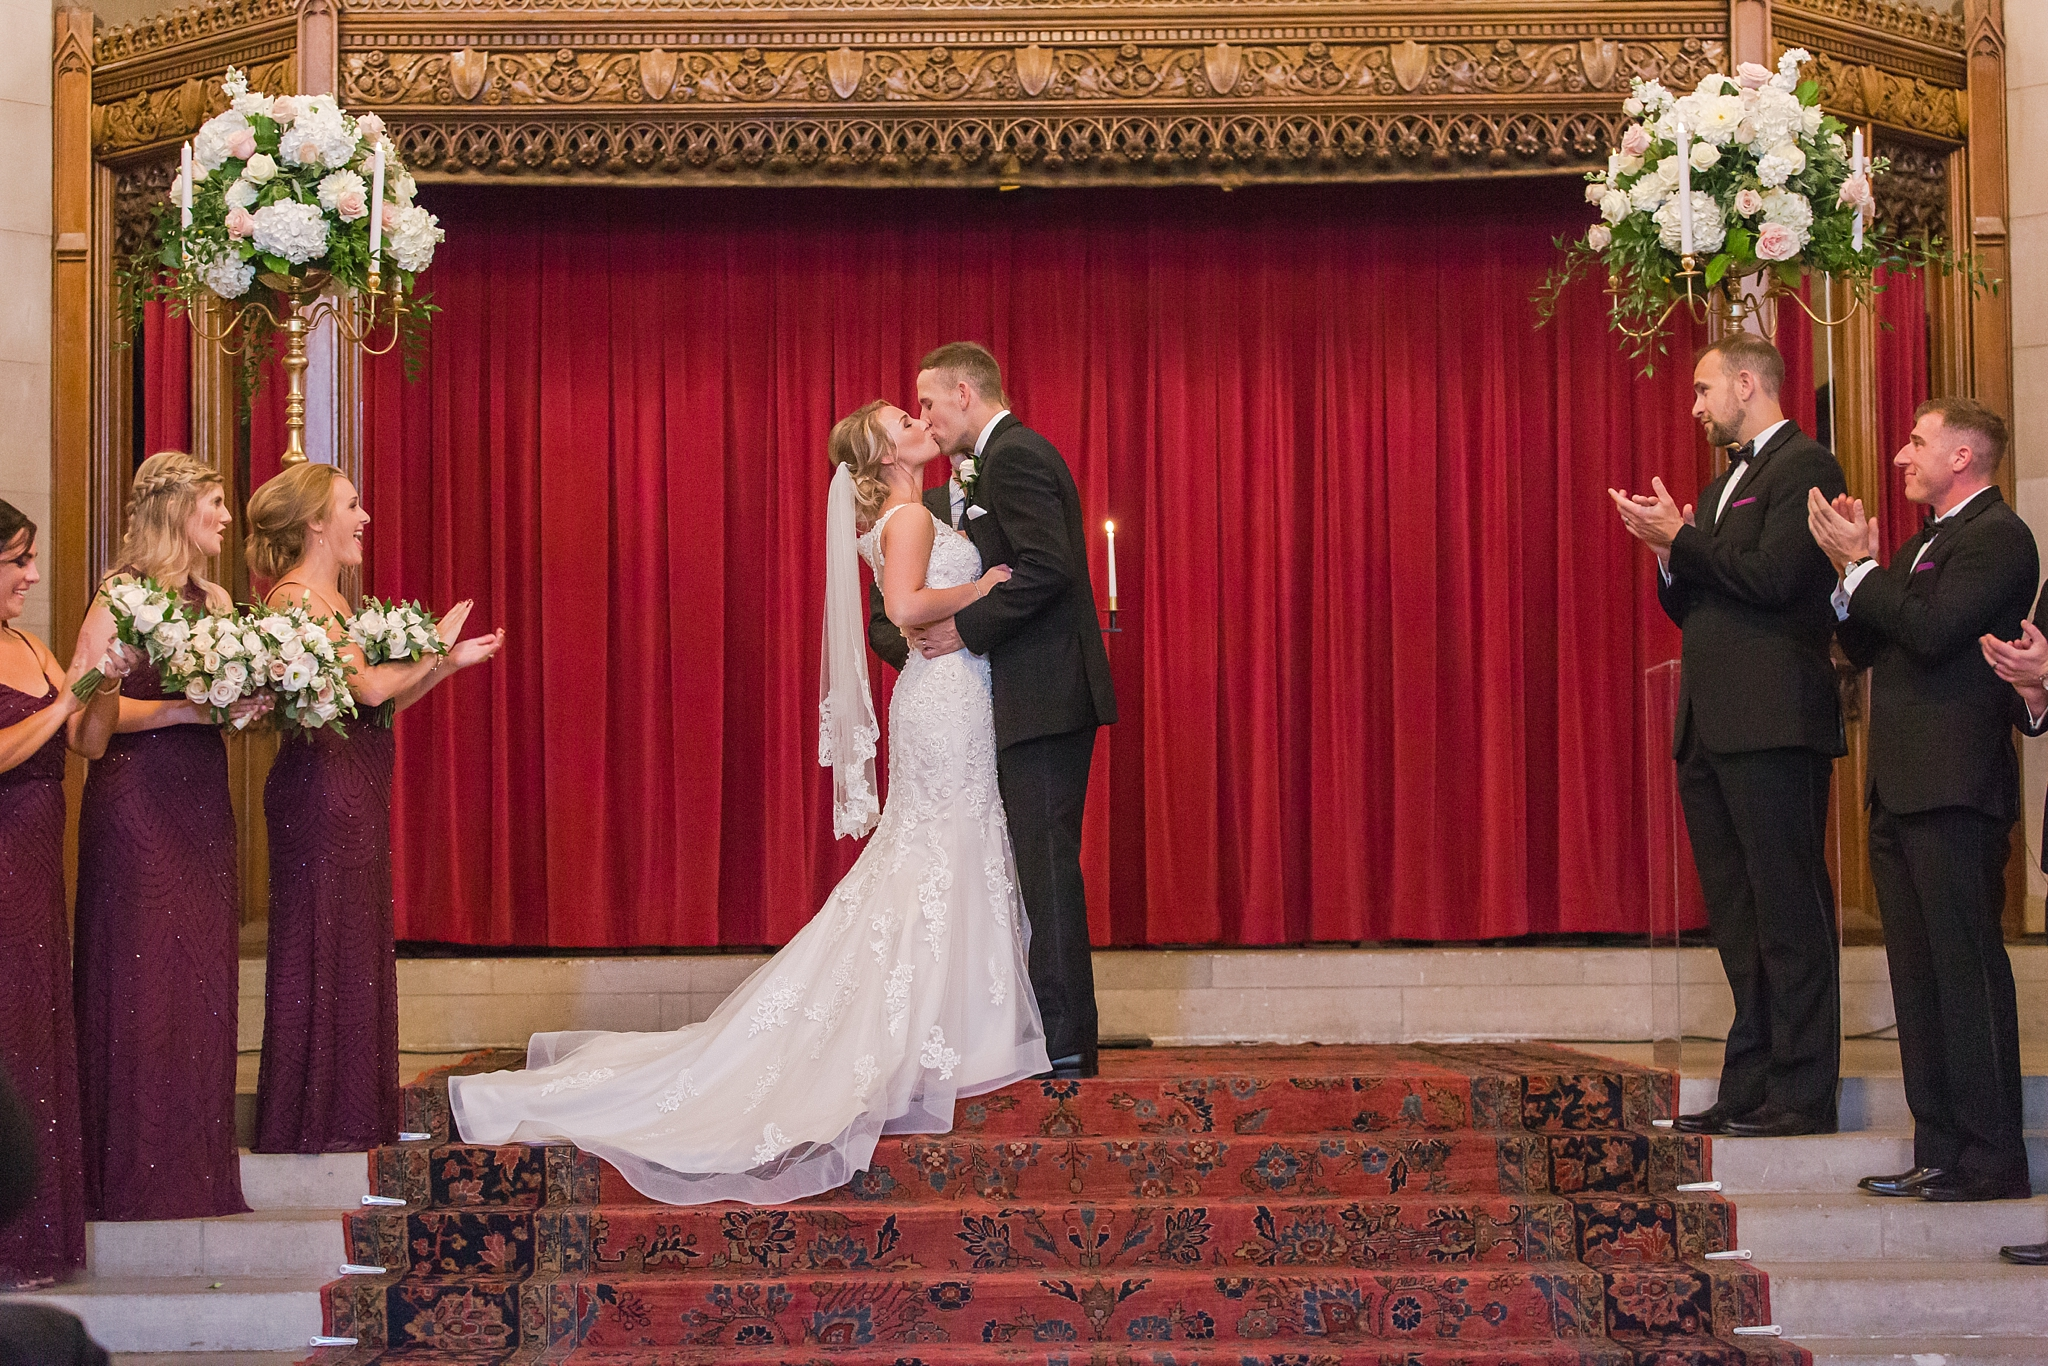 candid-romantic-wedding-photos-at-the-masonic-temple-belle-isle-detroit-institute-of-arts-in-detroit-michigan-by-courtney-carolyn-photography_0082.jpg